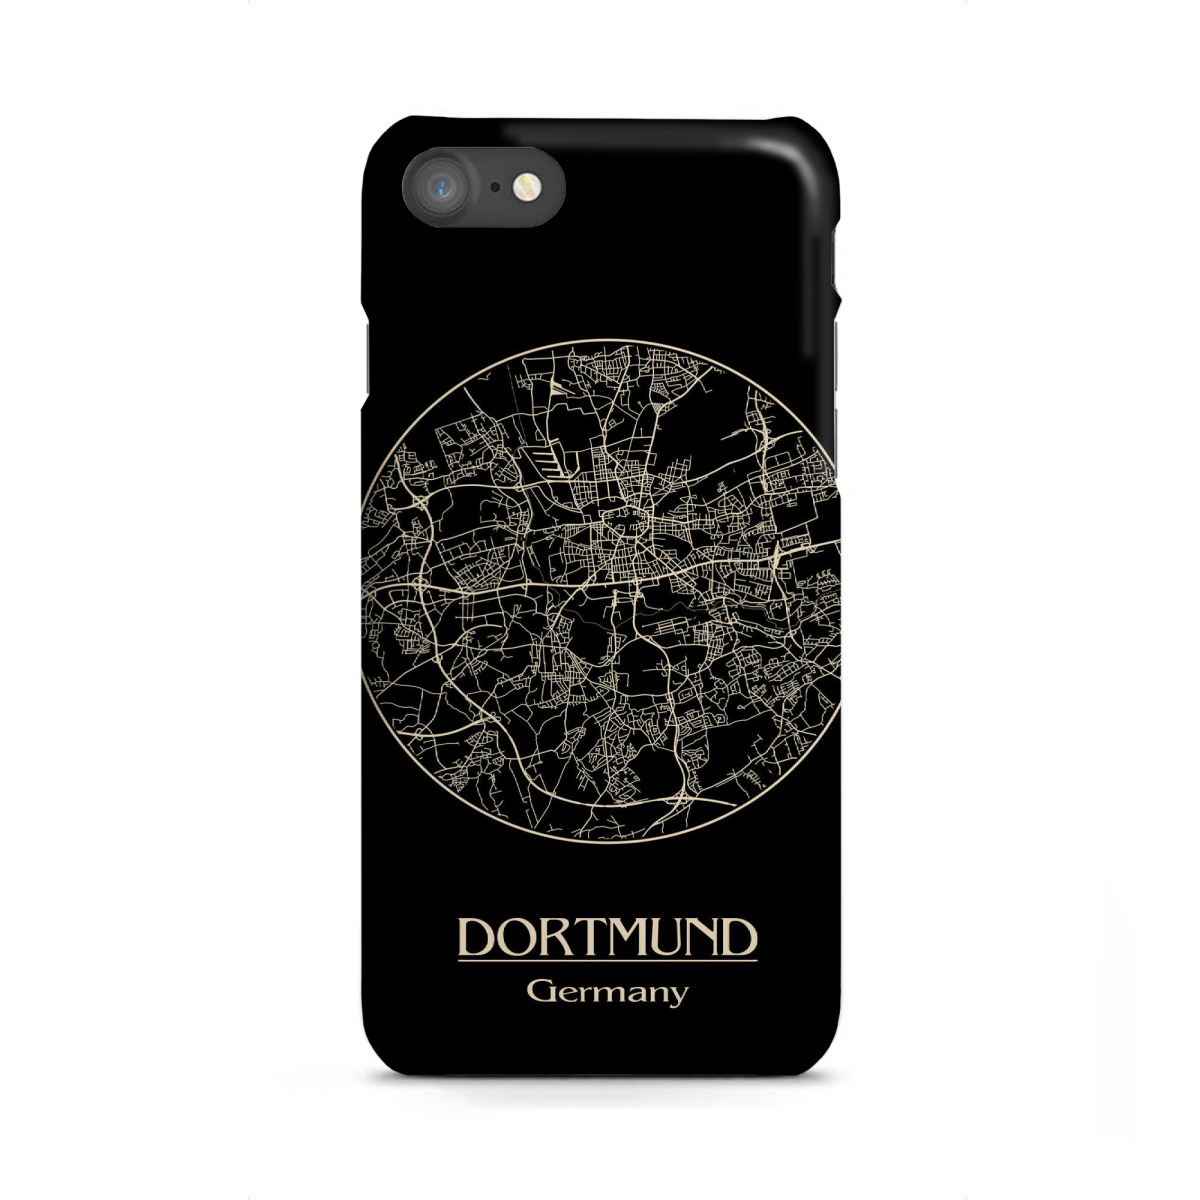 Dortmund On Map Of Germany.Purchase The Dortmund Germany Retro Map As A Case At Artboxone